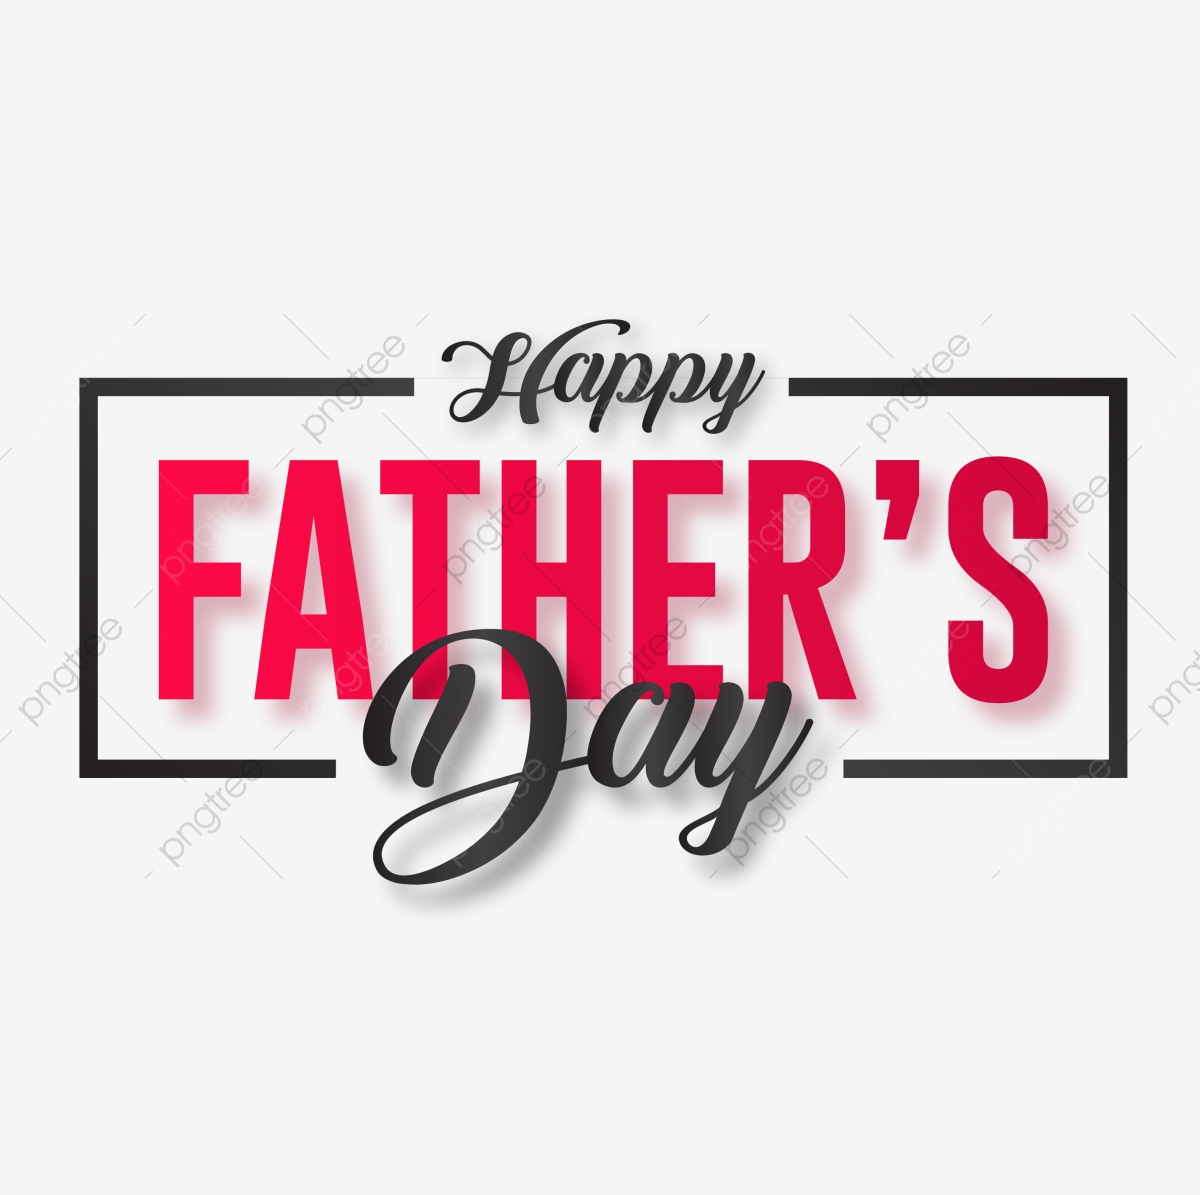 Free Well, father's day is almost upon us again! Fathers Day Png Images Vector And Psd Files Free Download On Pngtree SVG, PNG, EPS, DXF File